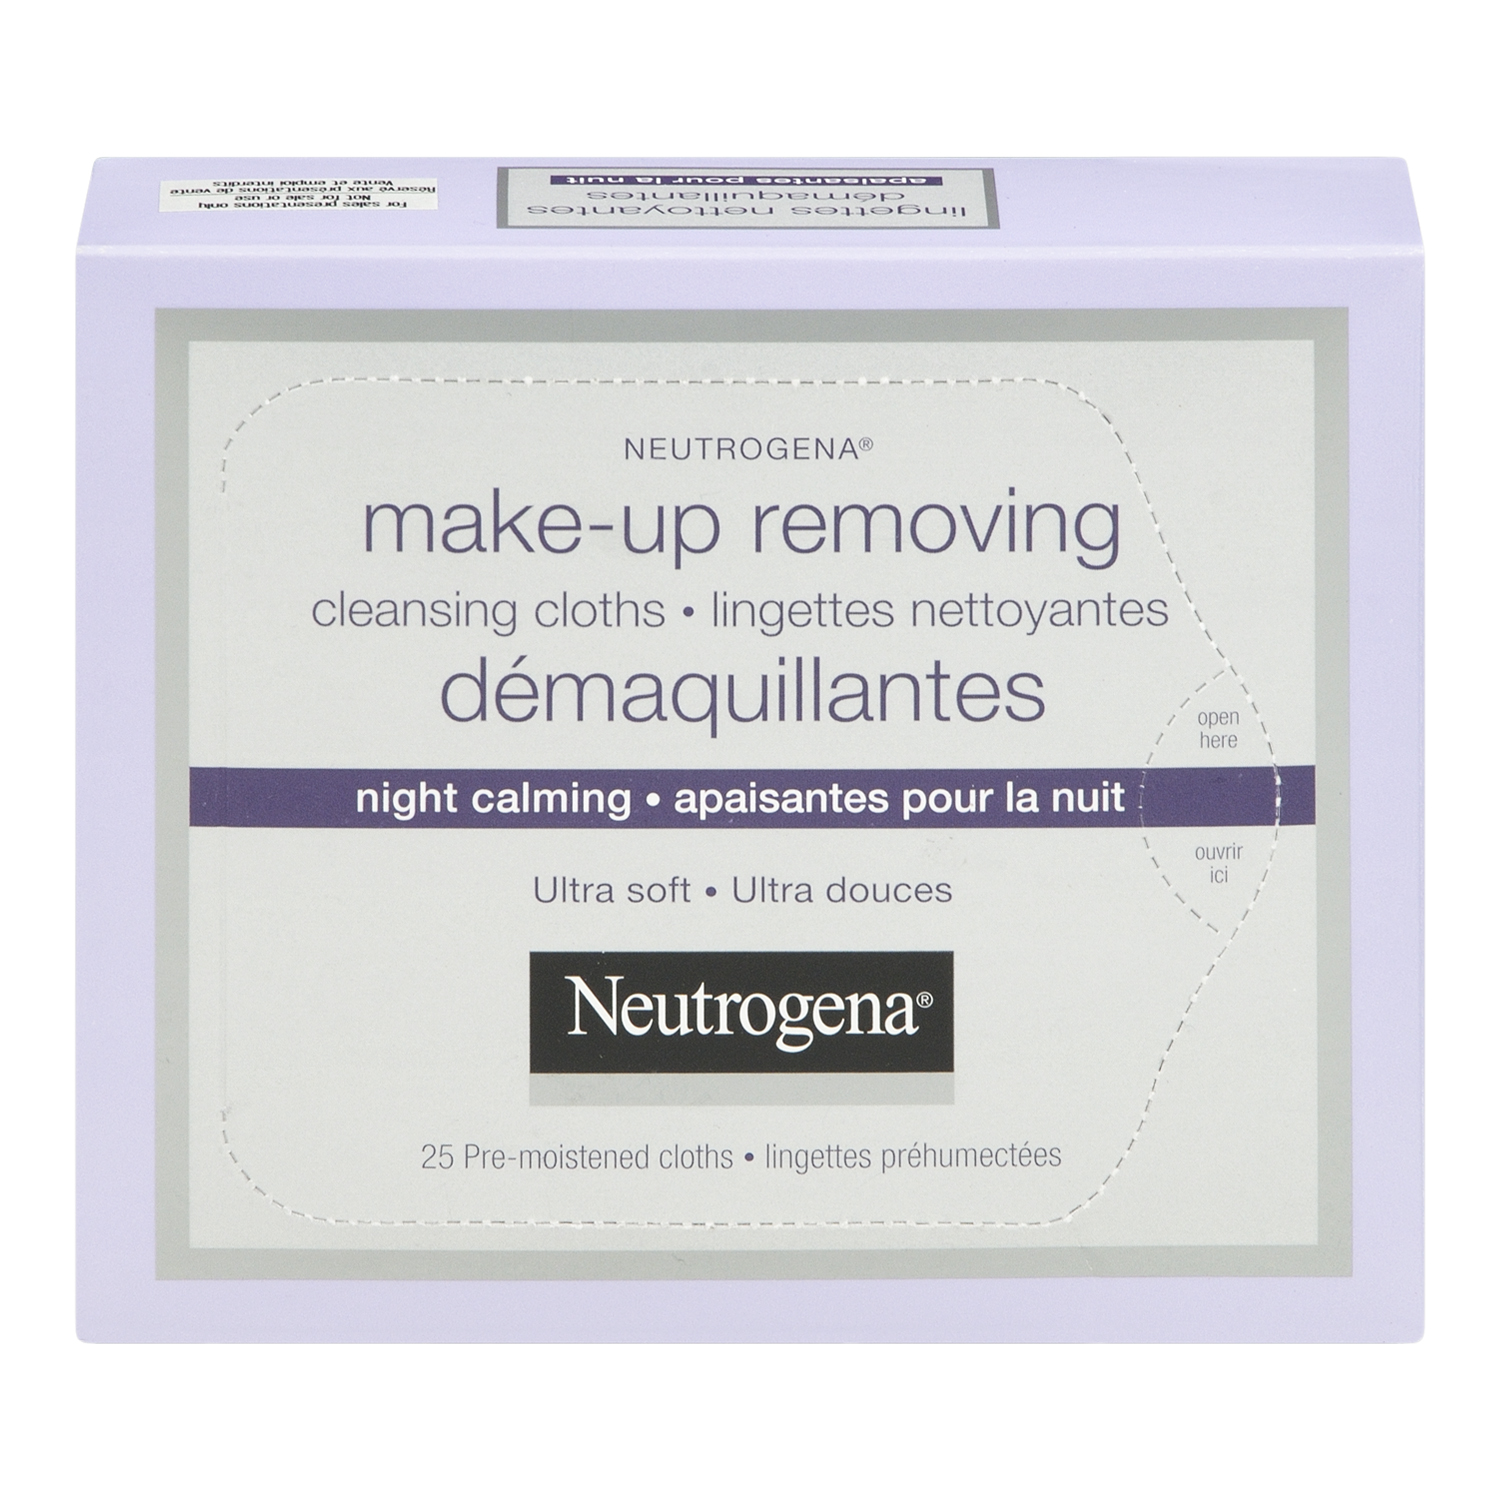 Neutrogena Cleansing Cloths Night Calming Makeup Removing